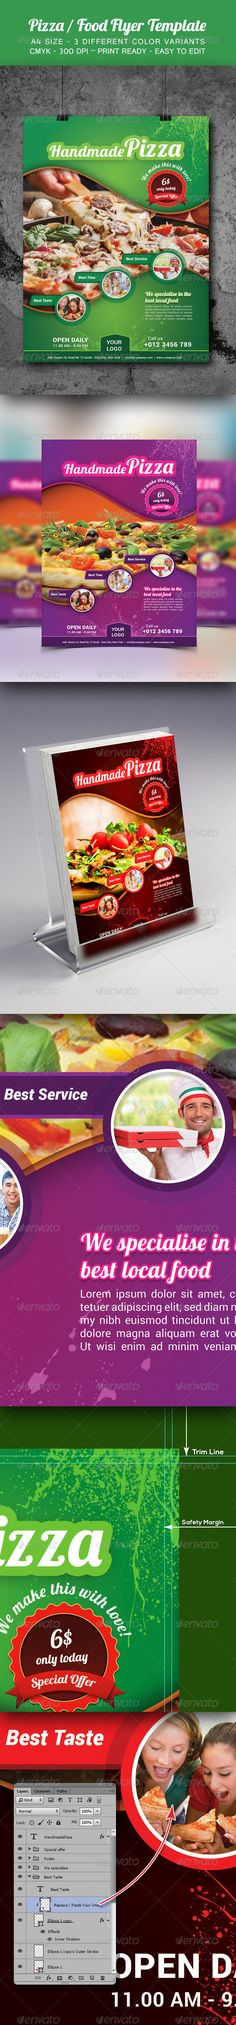 Pizza / Food Flyer Template #design Download: http://graphicriver.net/item/pizza-food-flyer-template/8646219?ref=ksioks